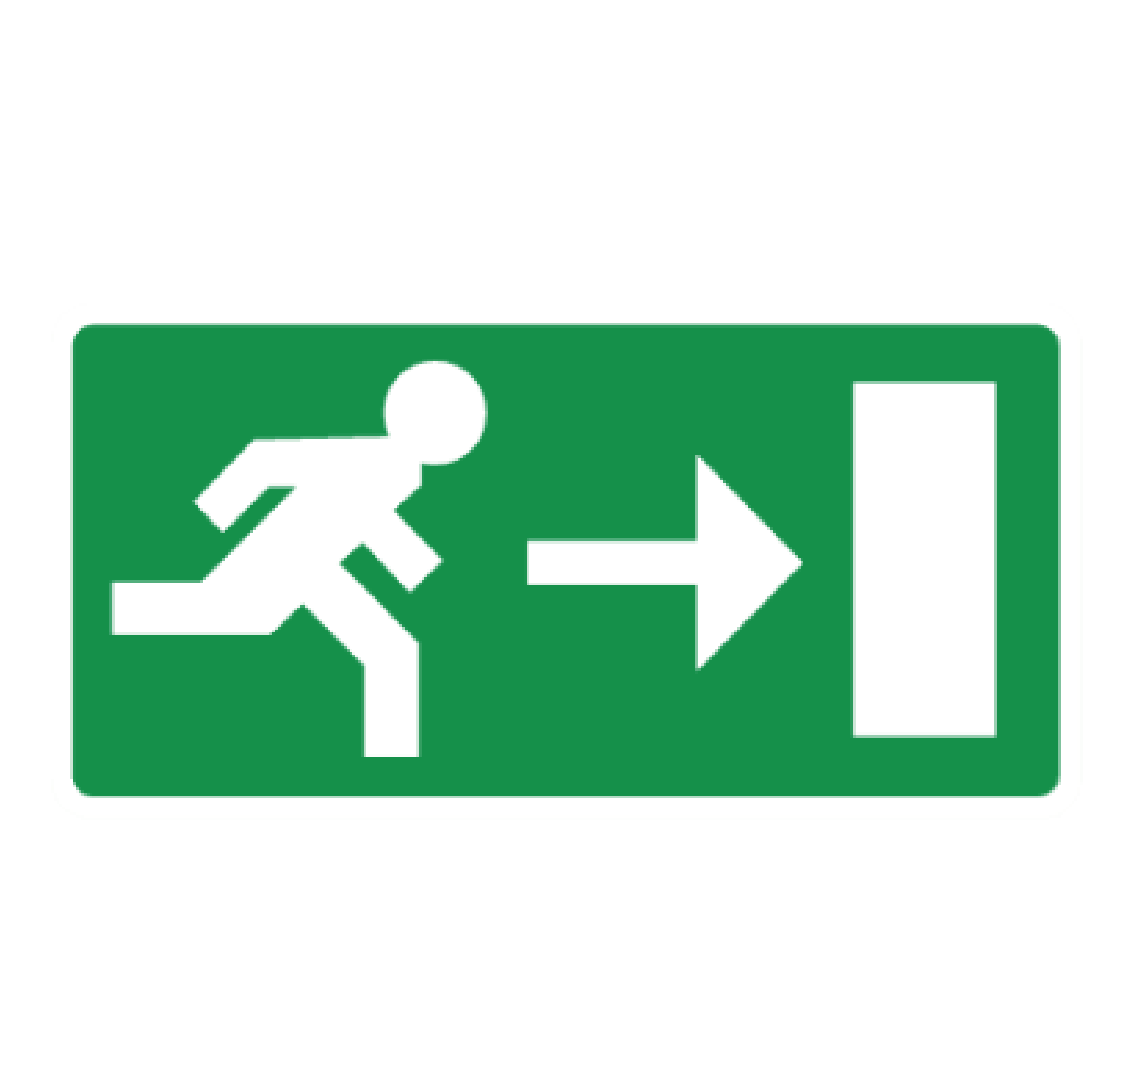 evacuation pictogram